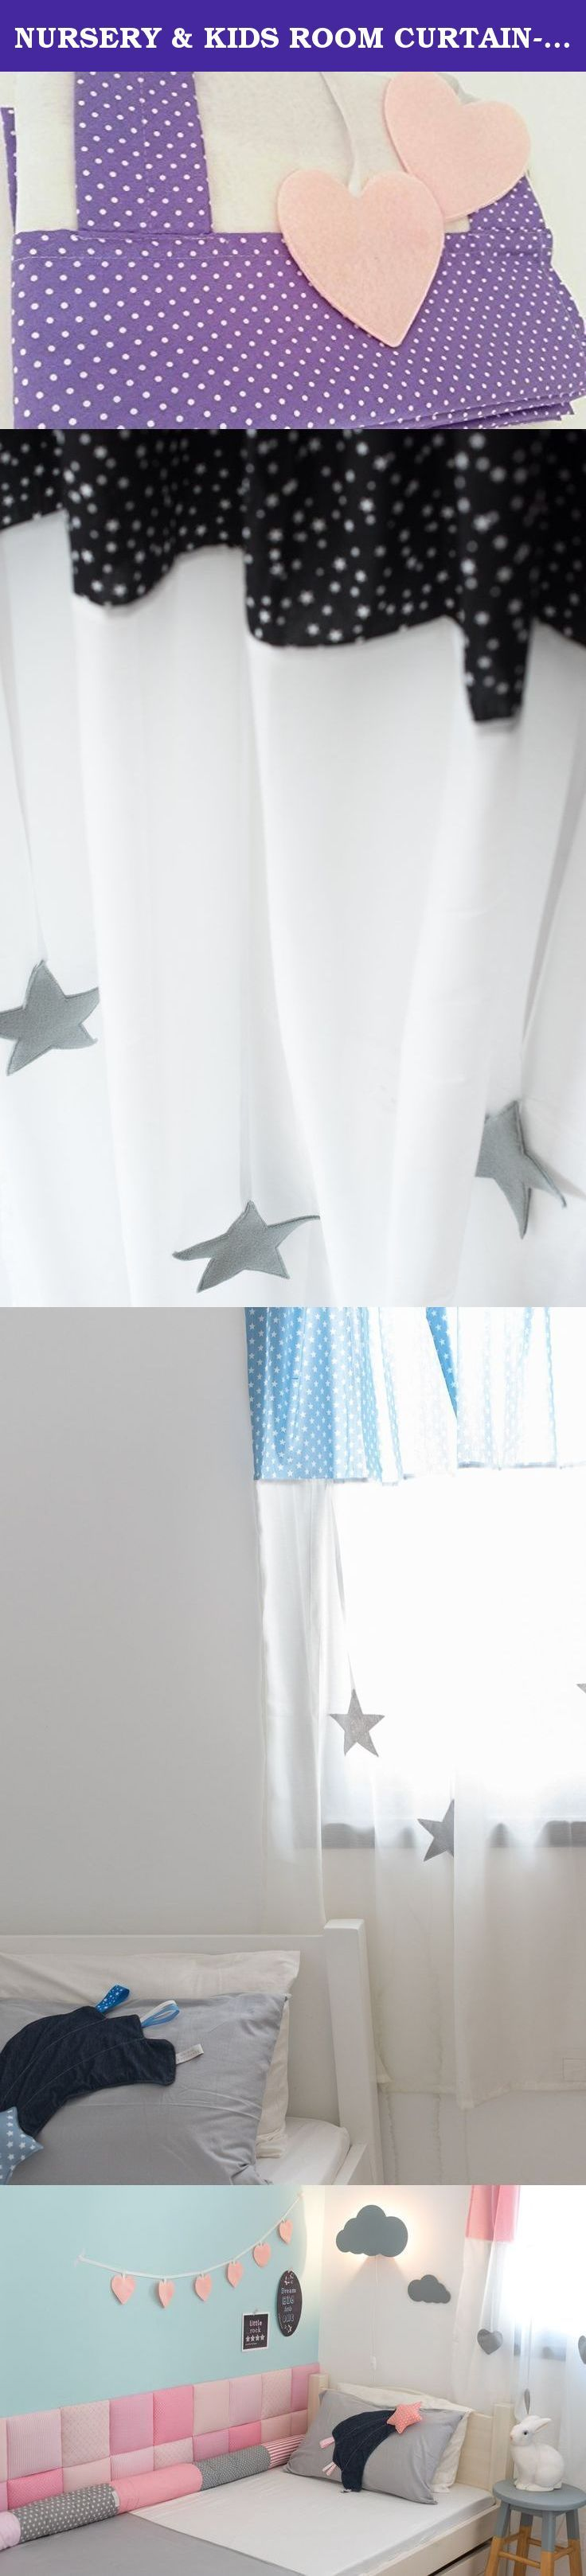 NURSERY & KIDS ROOM CURTAIN-Purple & white dots-decorative high quality tab top curtain kids curtain. These designed curtains are perfect for a nursery, boy's room, girl's room or a playroom. This curtain design is a combination of printed cotton fabric in the upper part, and a white semi-transparent fabric in the lower part. Decorated with 6 hanging stars / hearts. Adds a lot of color to your children's room. The curtain does not block the light entry, the semi-transparent fabric breaks…